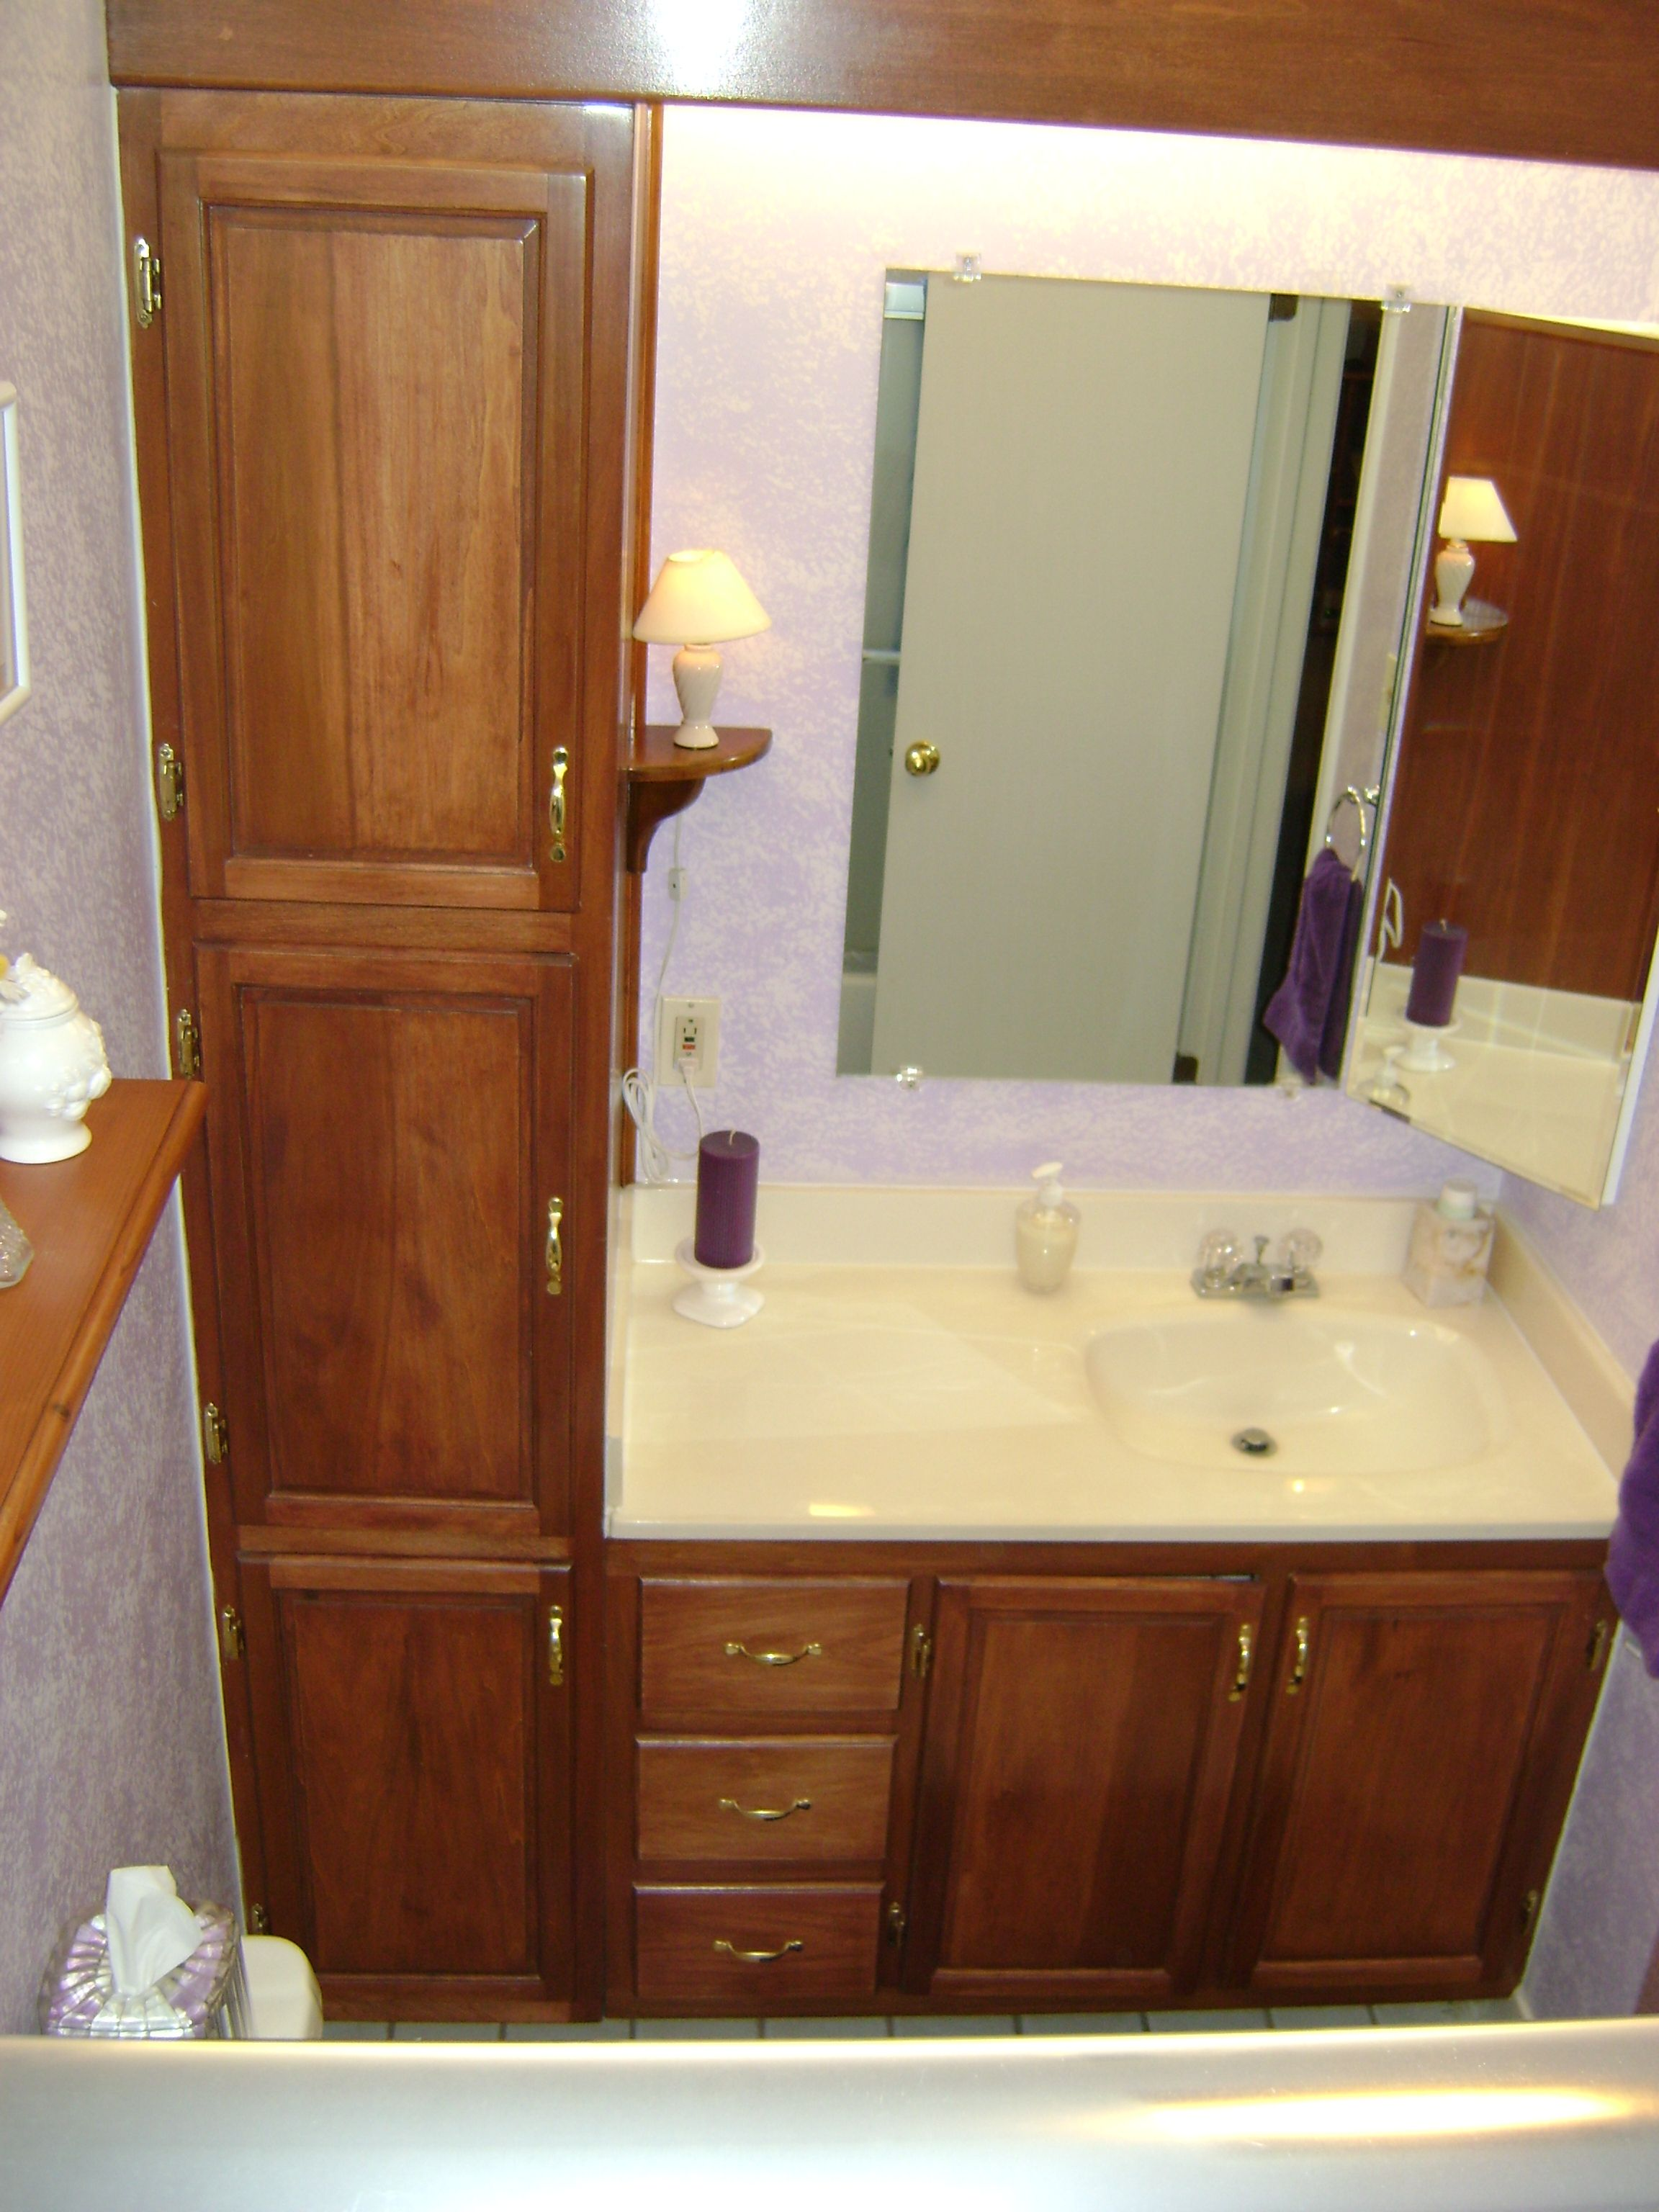 Bathroom Vanities And Linen Cabinets BathroomVanity With Linen - Clearance towels for small bathroom ideas